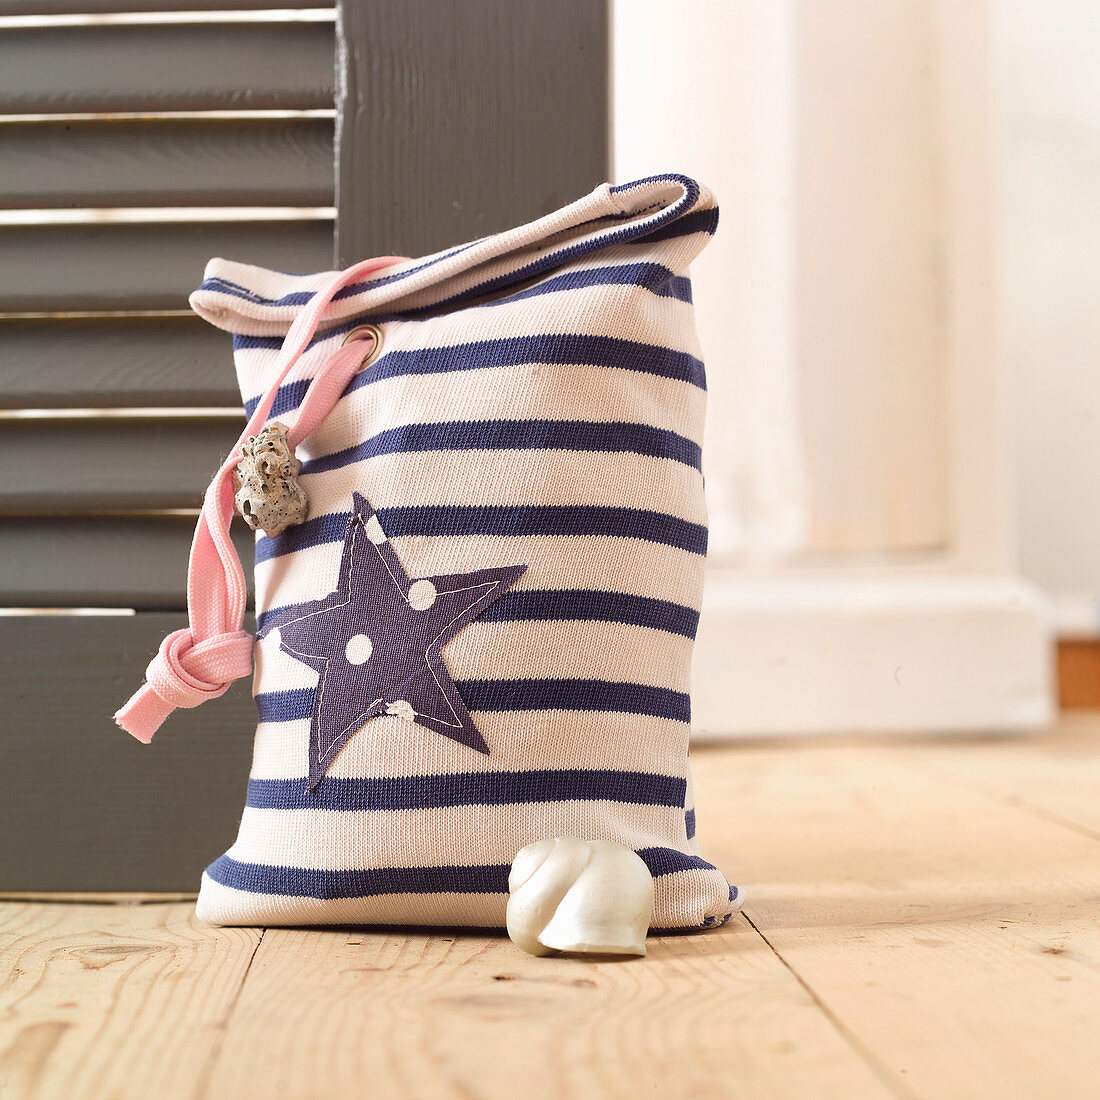 Door stop made from sleeve of striped shirt